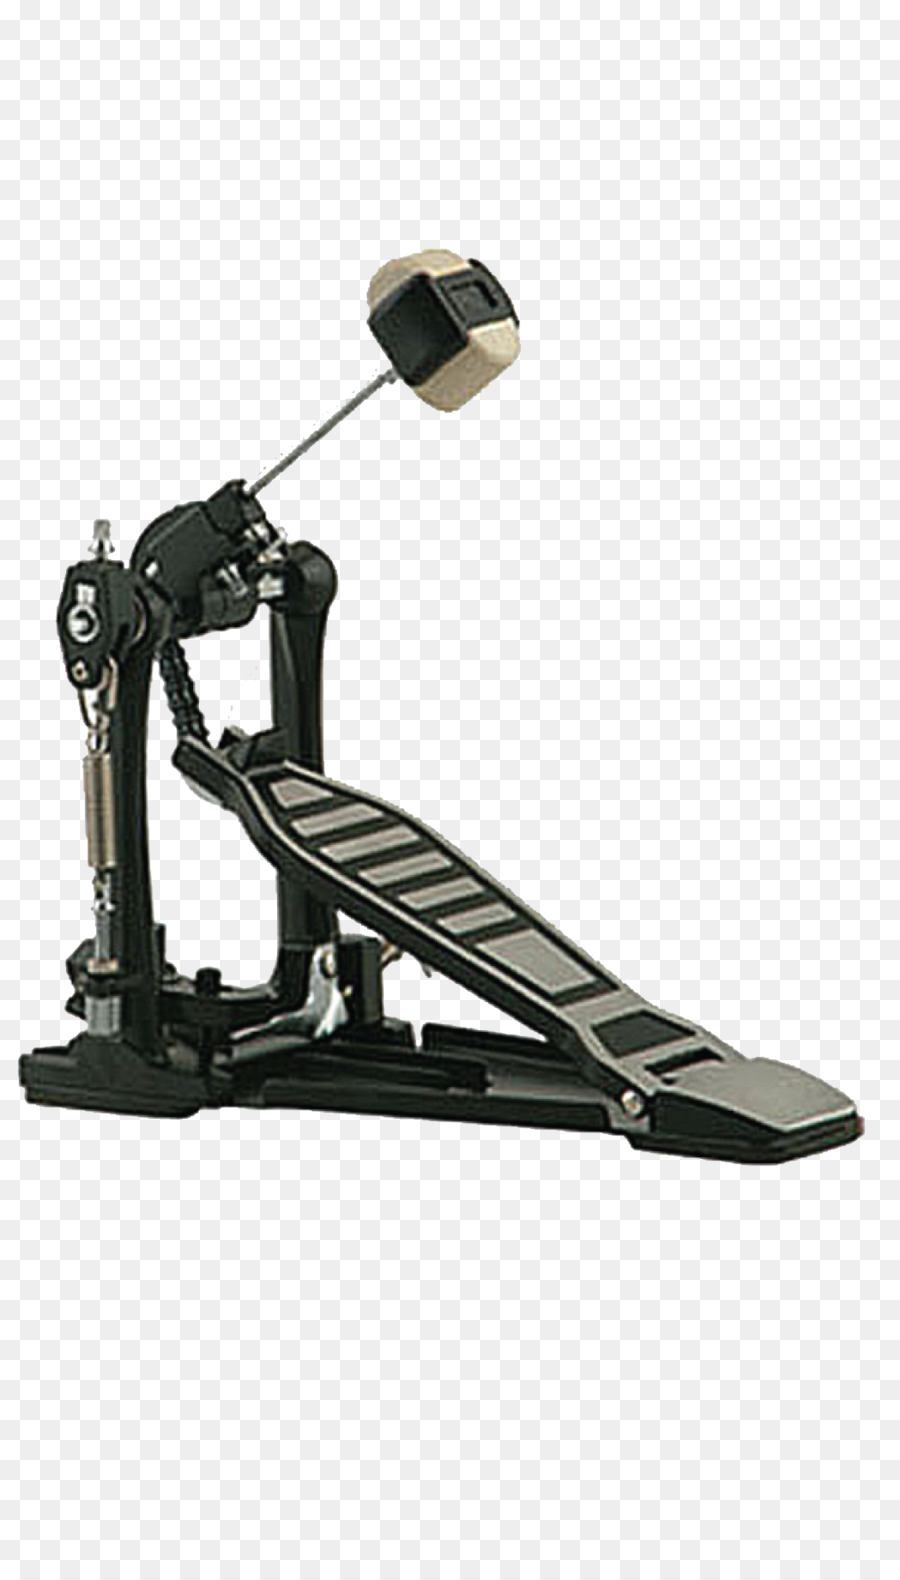 bass drum pedal png clipart Drum pedal Bass Drums